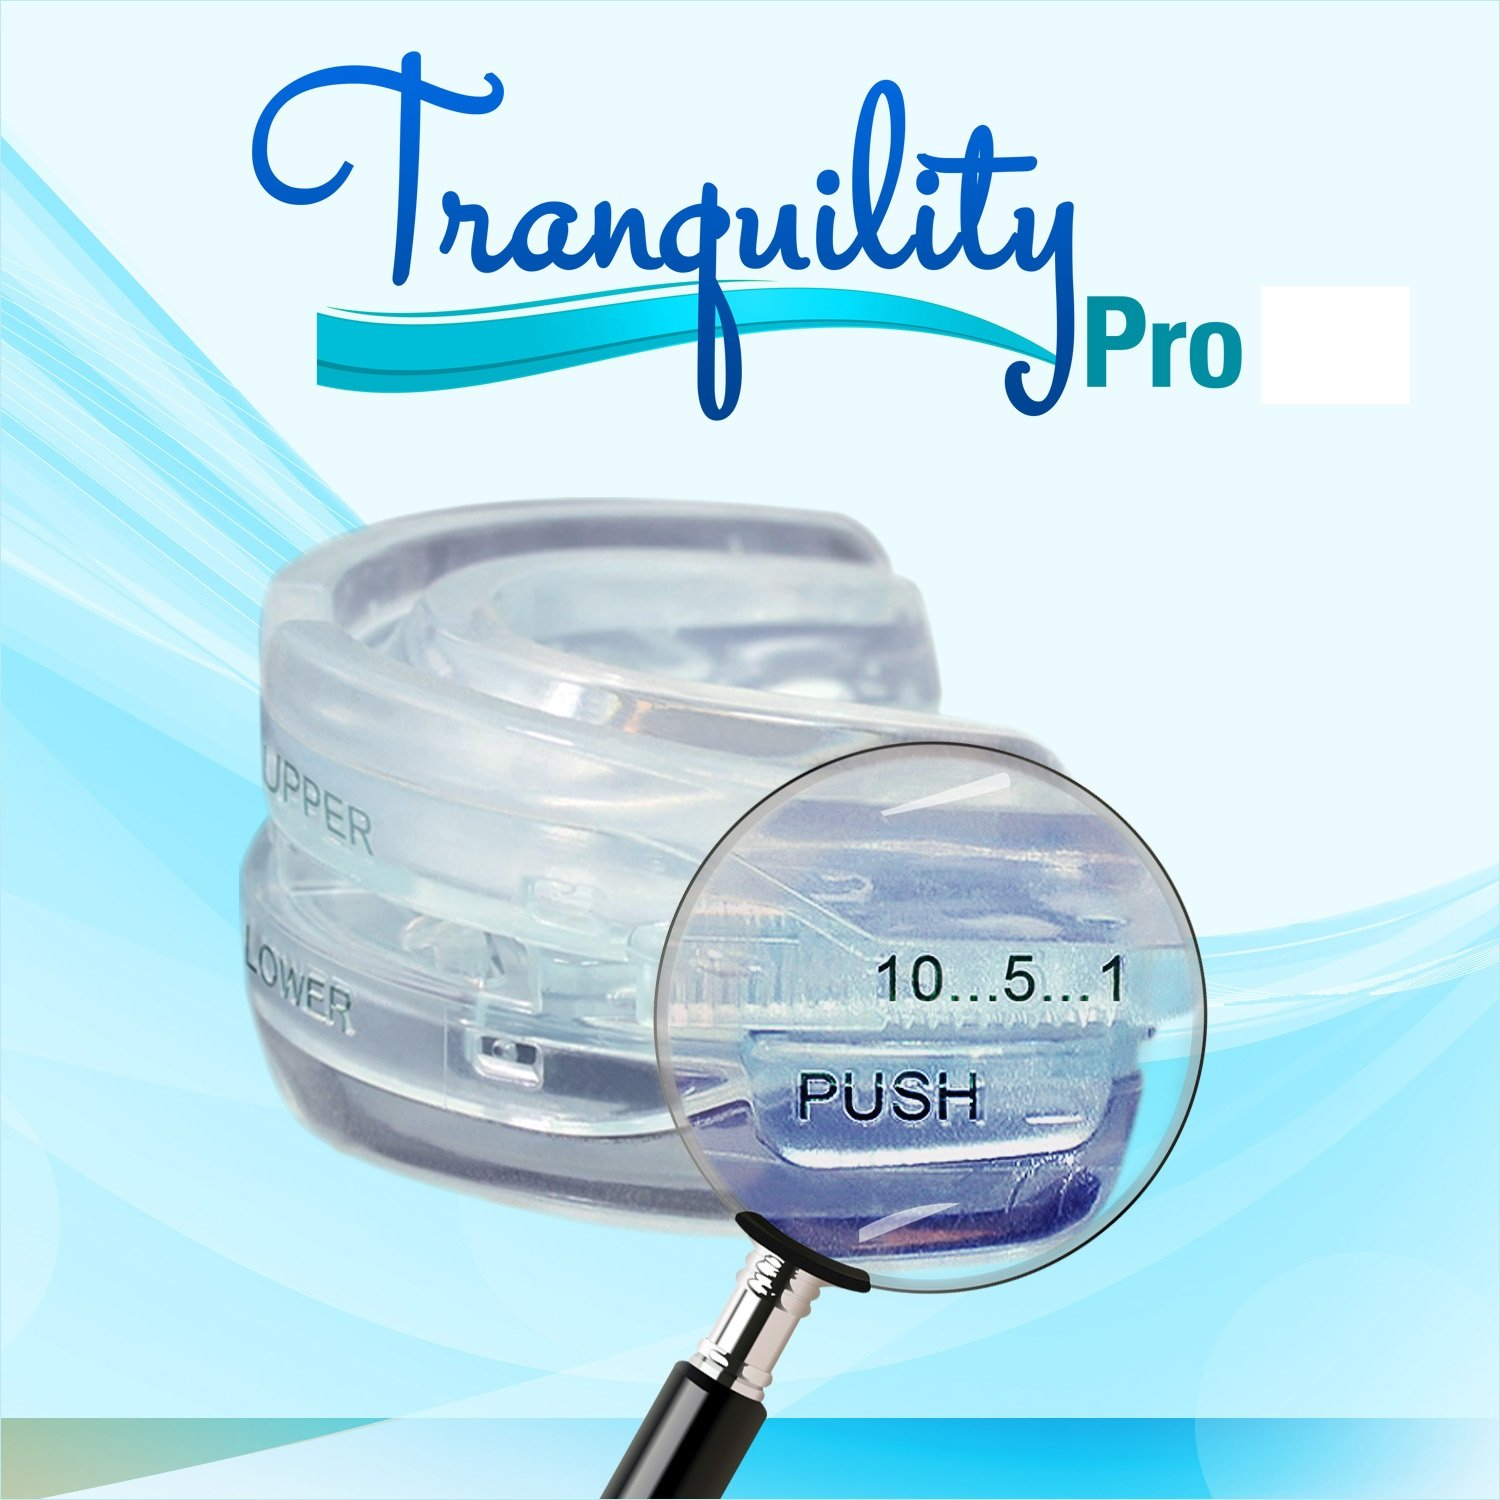 Tranquility Pro 2 Adjustable Bruxism Night Mouthpiece Sleep Mouthguard Mouth Guard Aid anti-snoring device - 714xfN8dyyL - Anti-snoring device – top 5 Amazon's best sellers